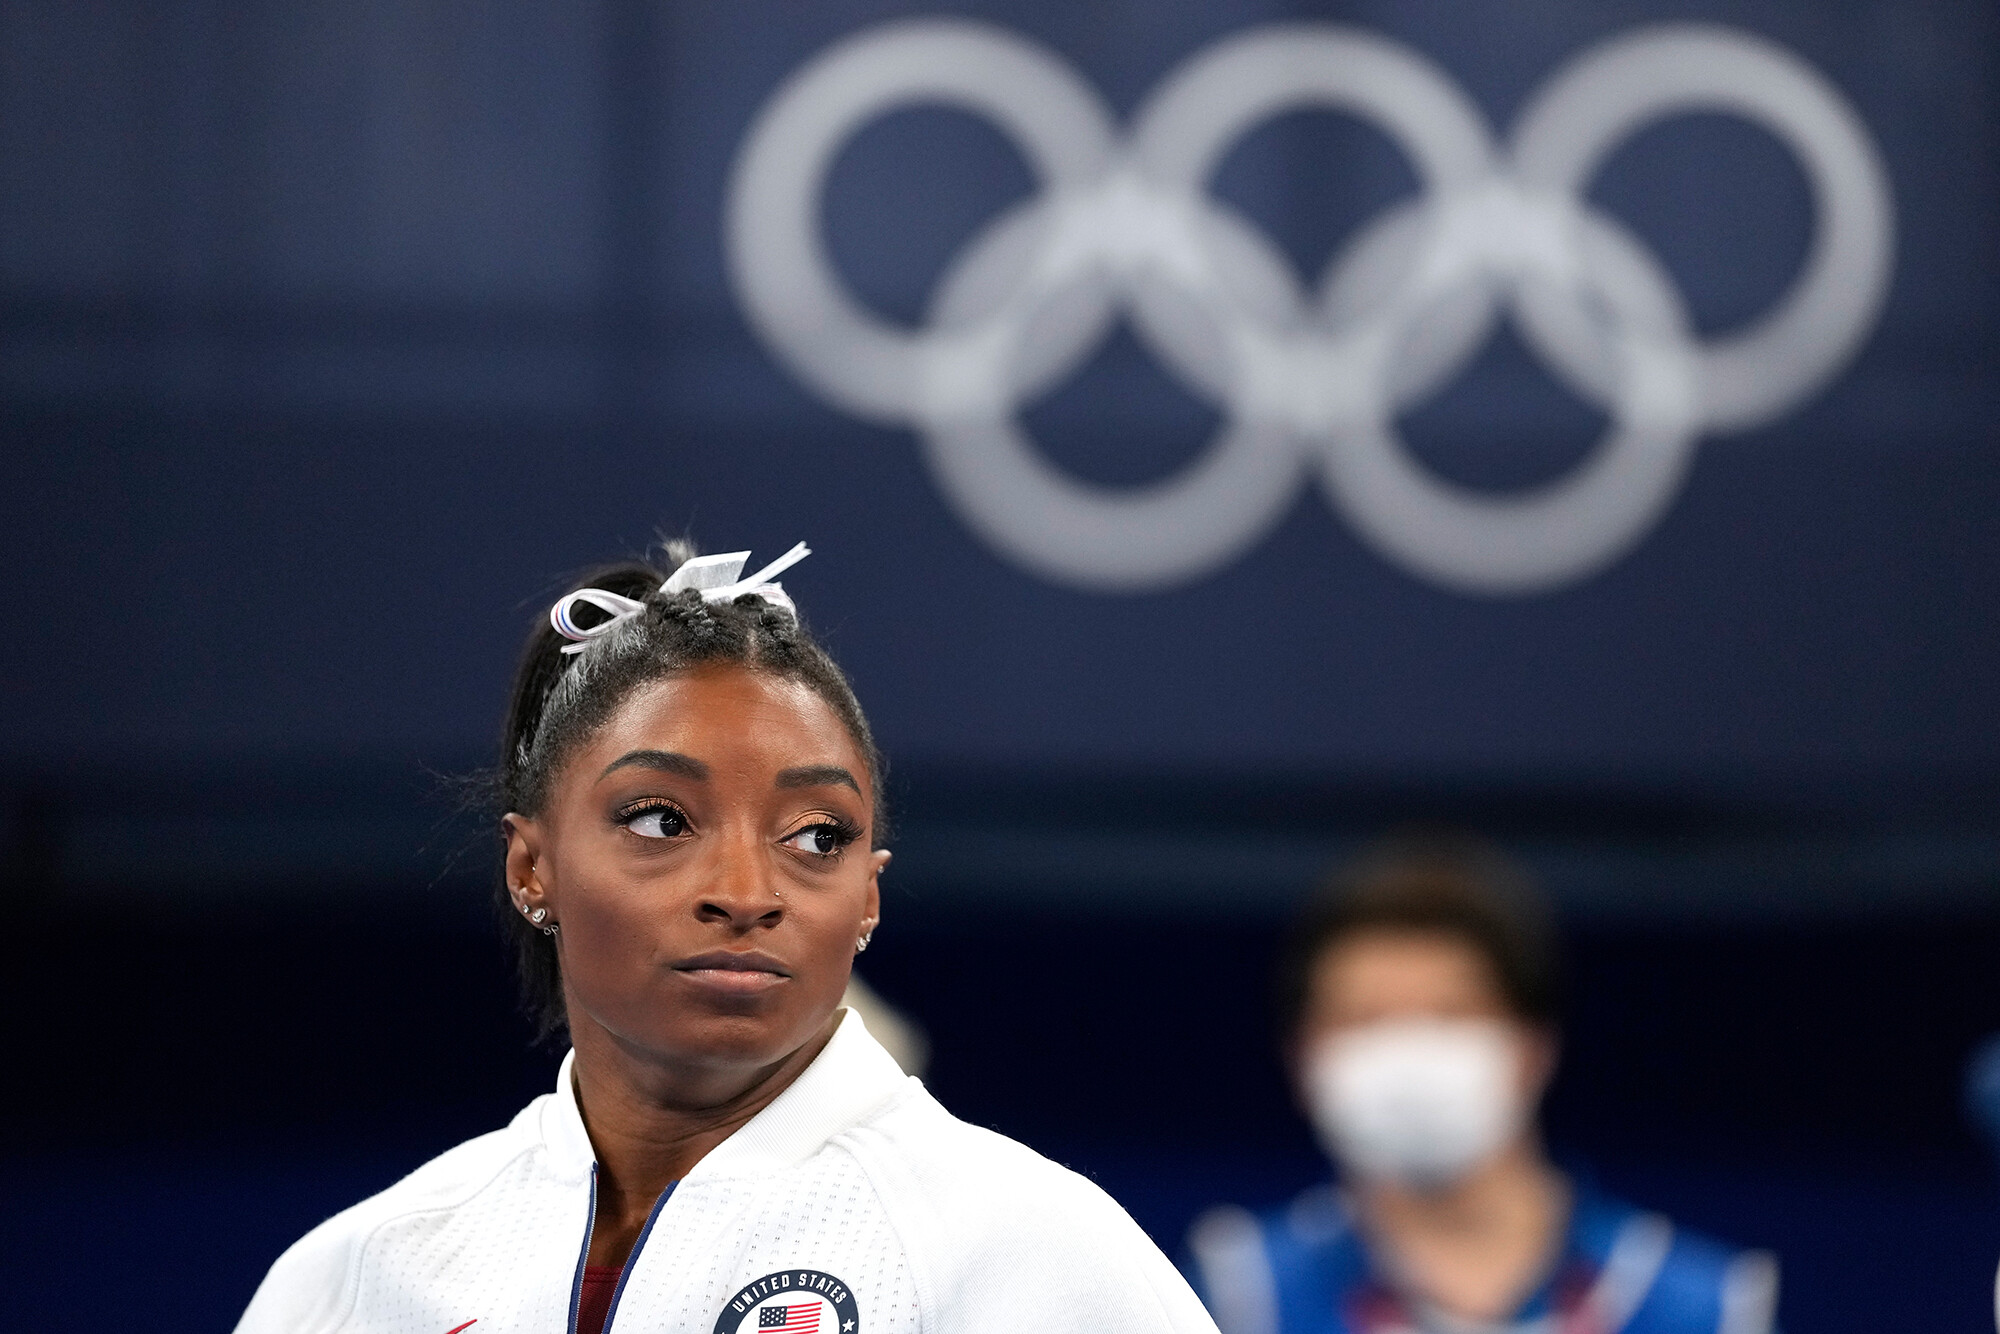 Simone Biles' sponsors stand by her after she withdraws from Olympic events